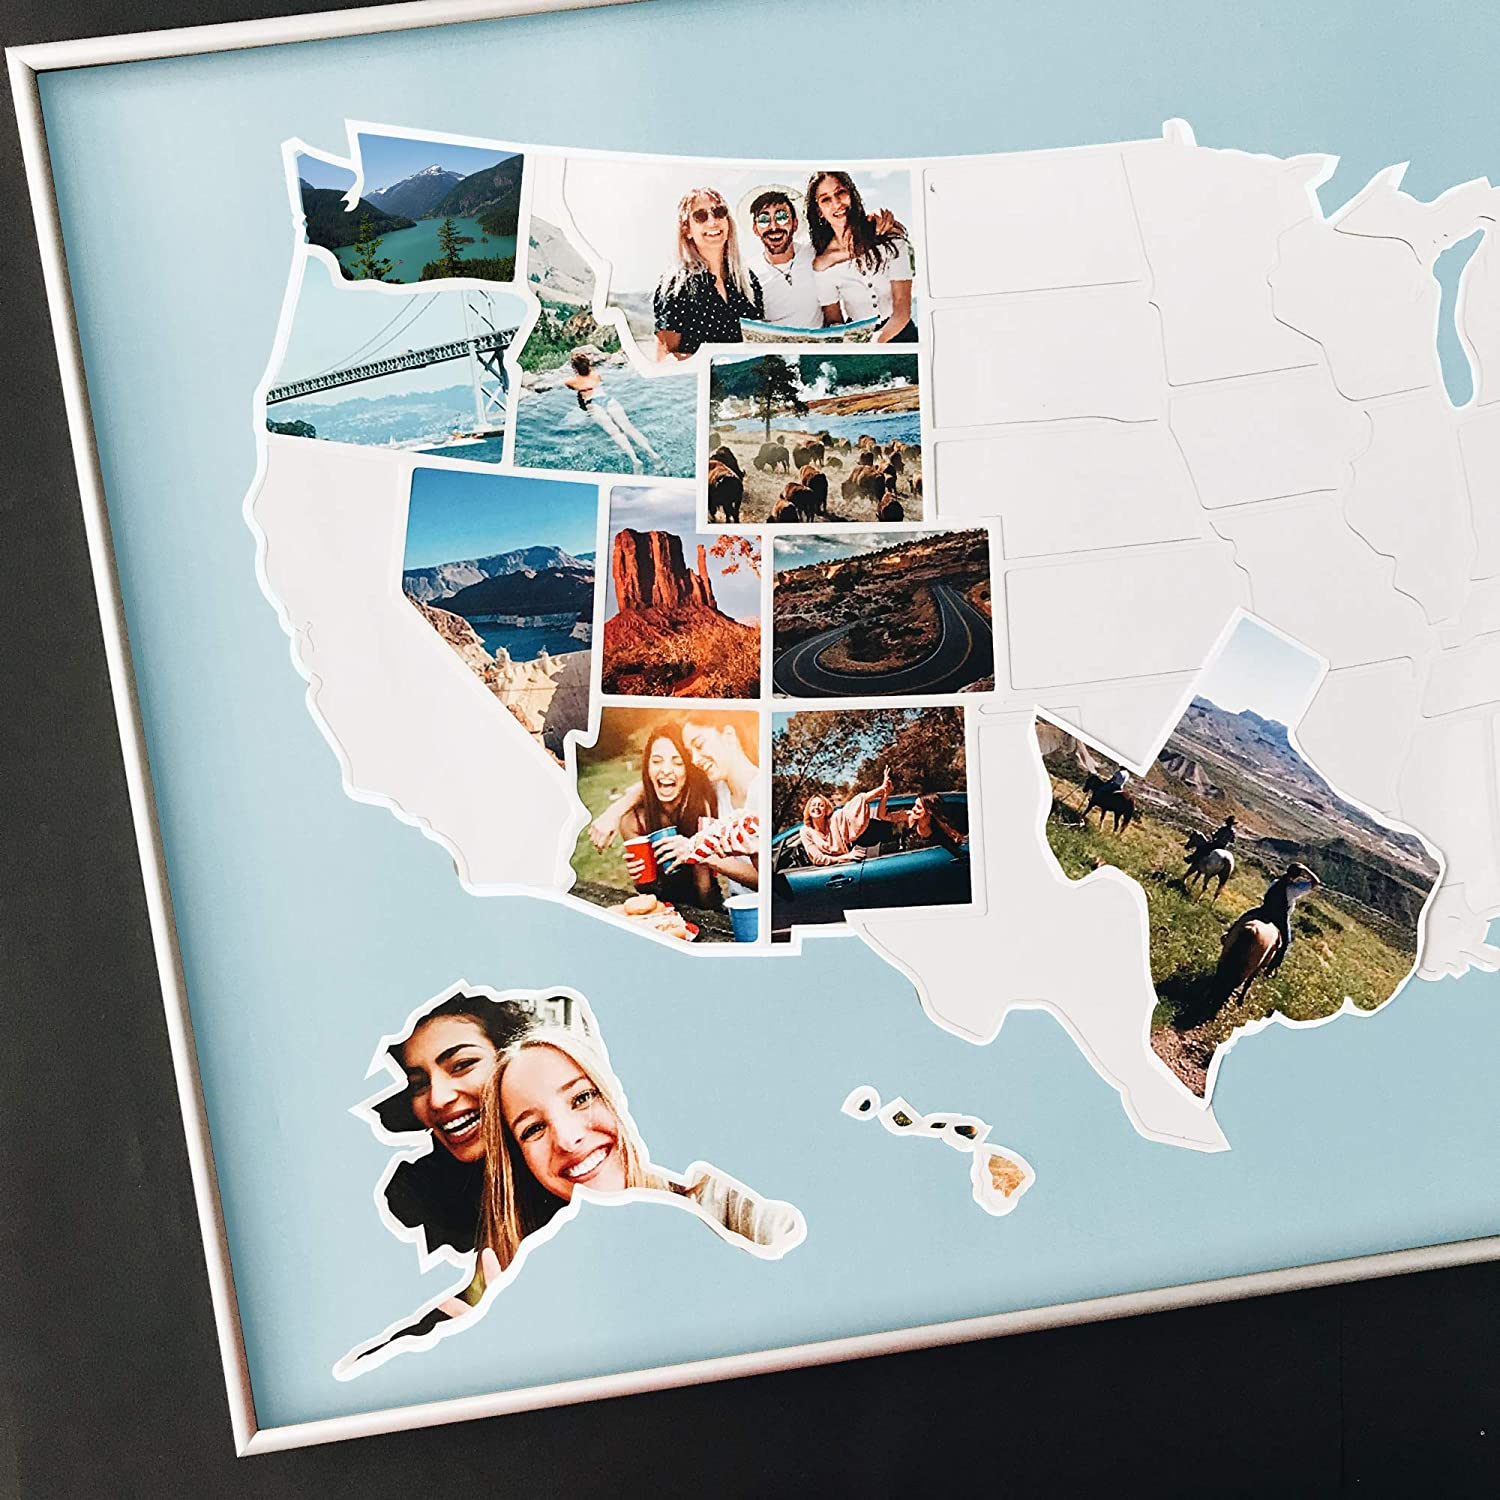 USA Photo Map - 50 States Travel Map - 24 x 36 in - Unframed - Made from Flexible Plastic - Includes Photo Maker - Blue